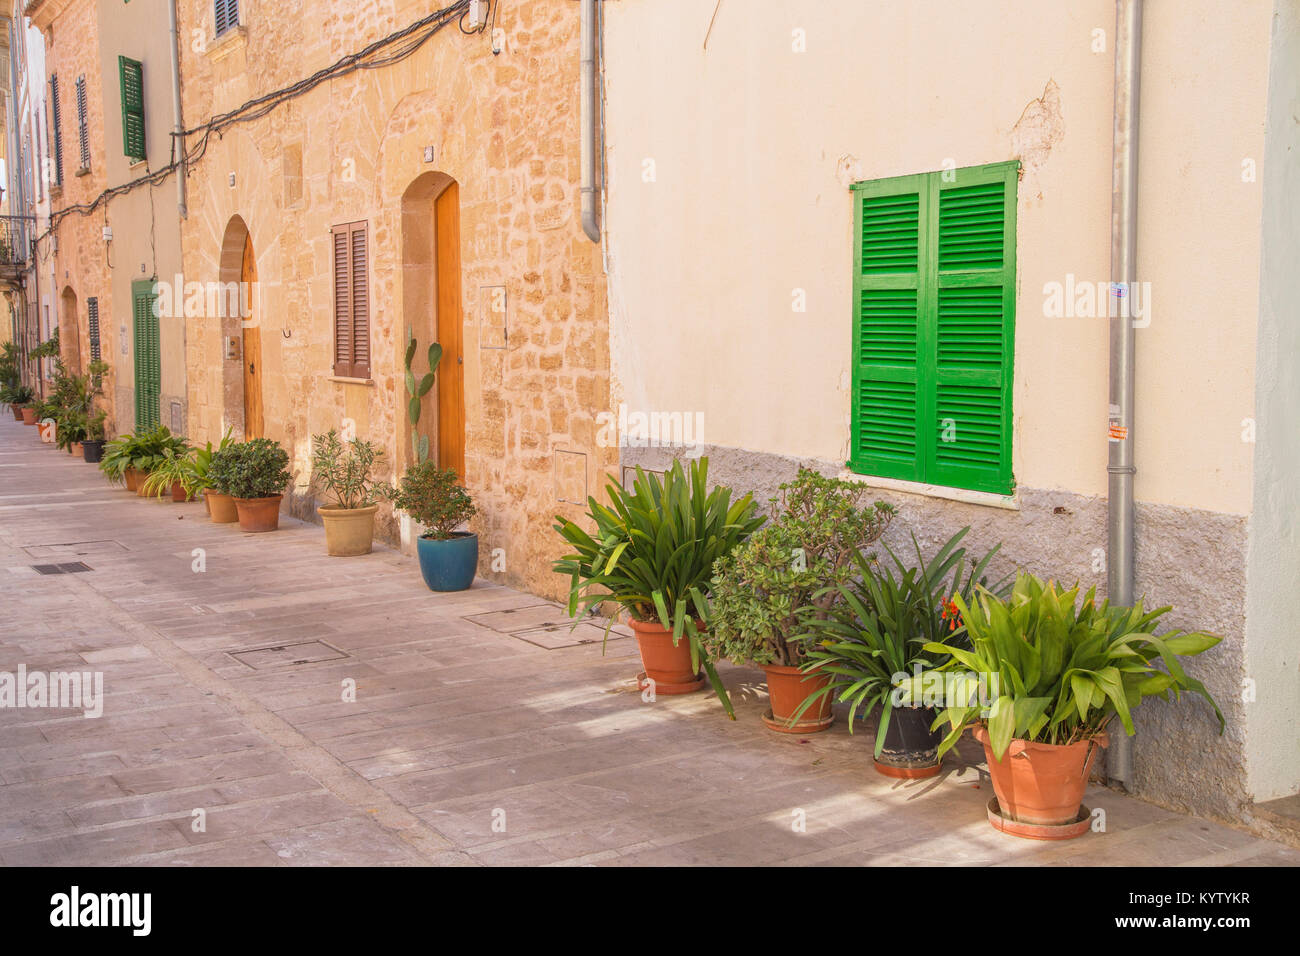 Alcudia old town streets, Alcudia, Mallorca, Balearic Islands, Spain, Europe - Stock Image